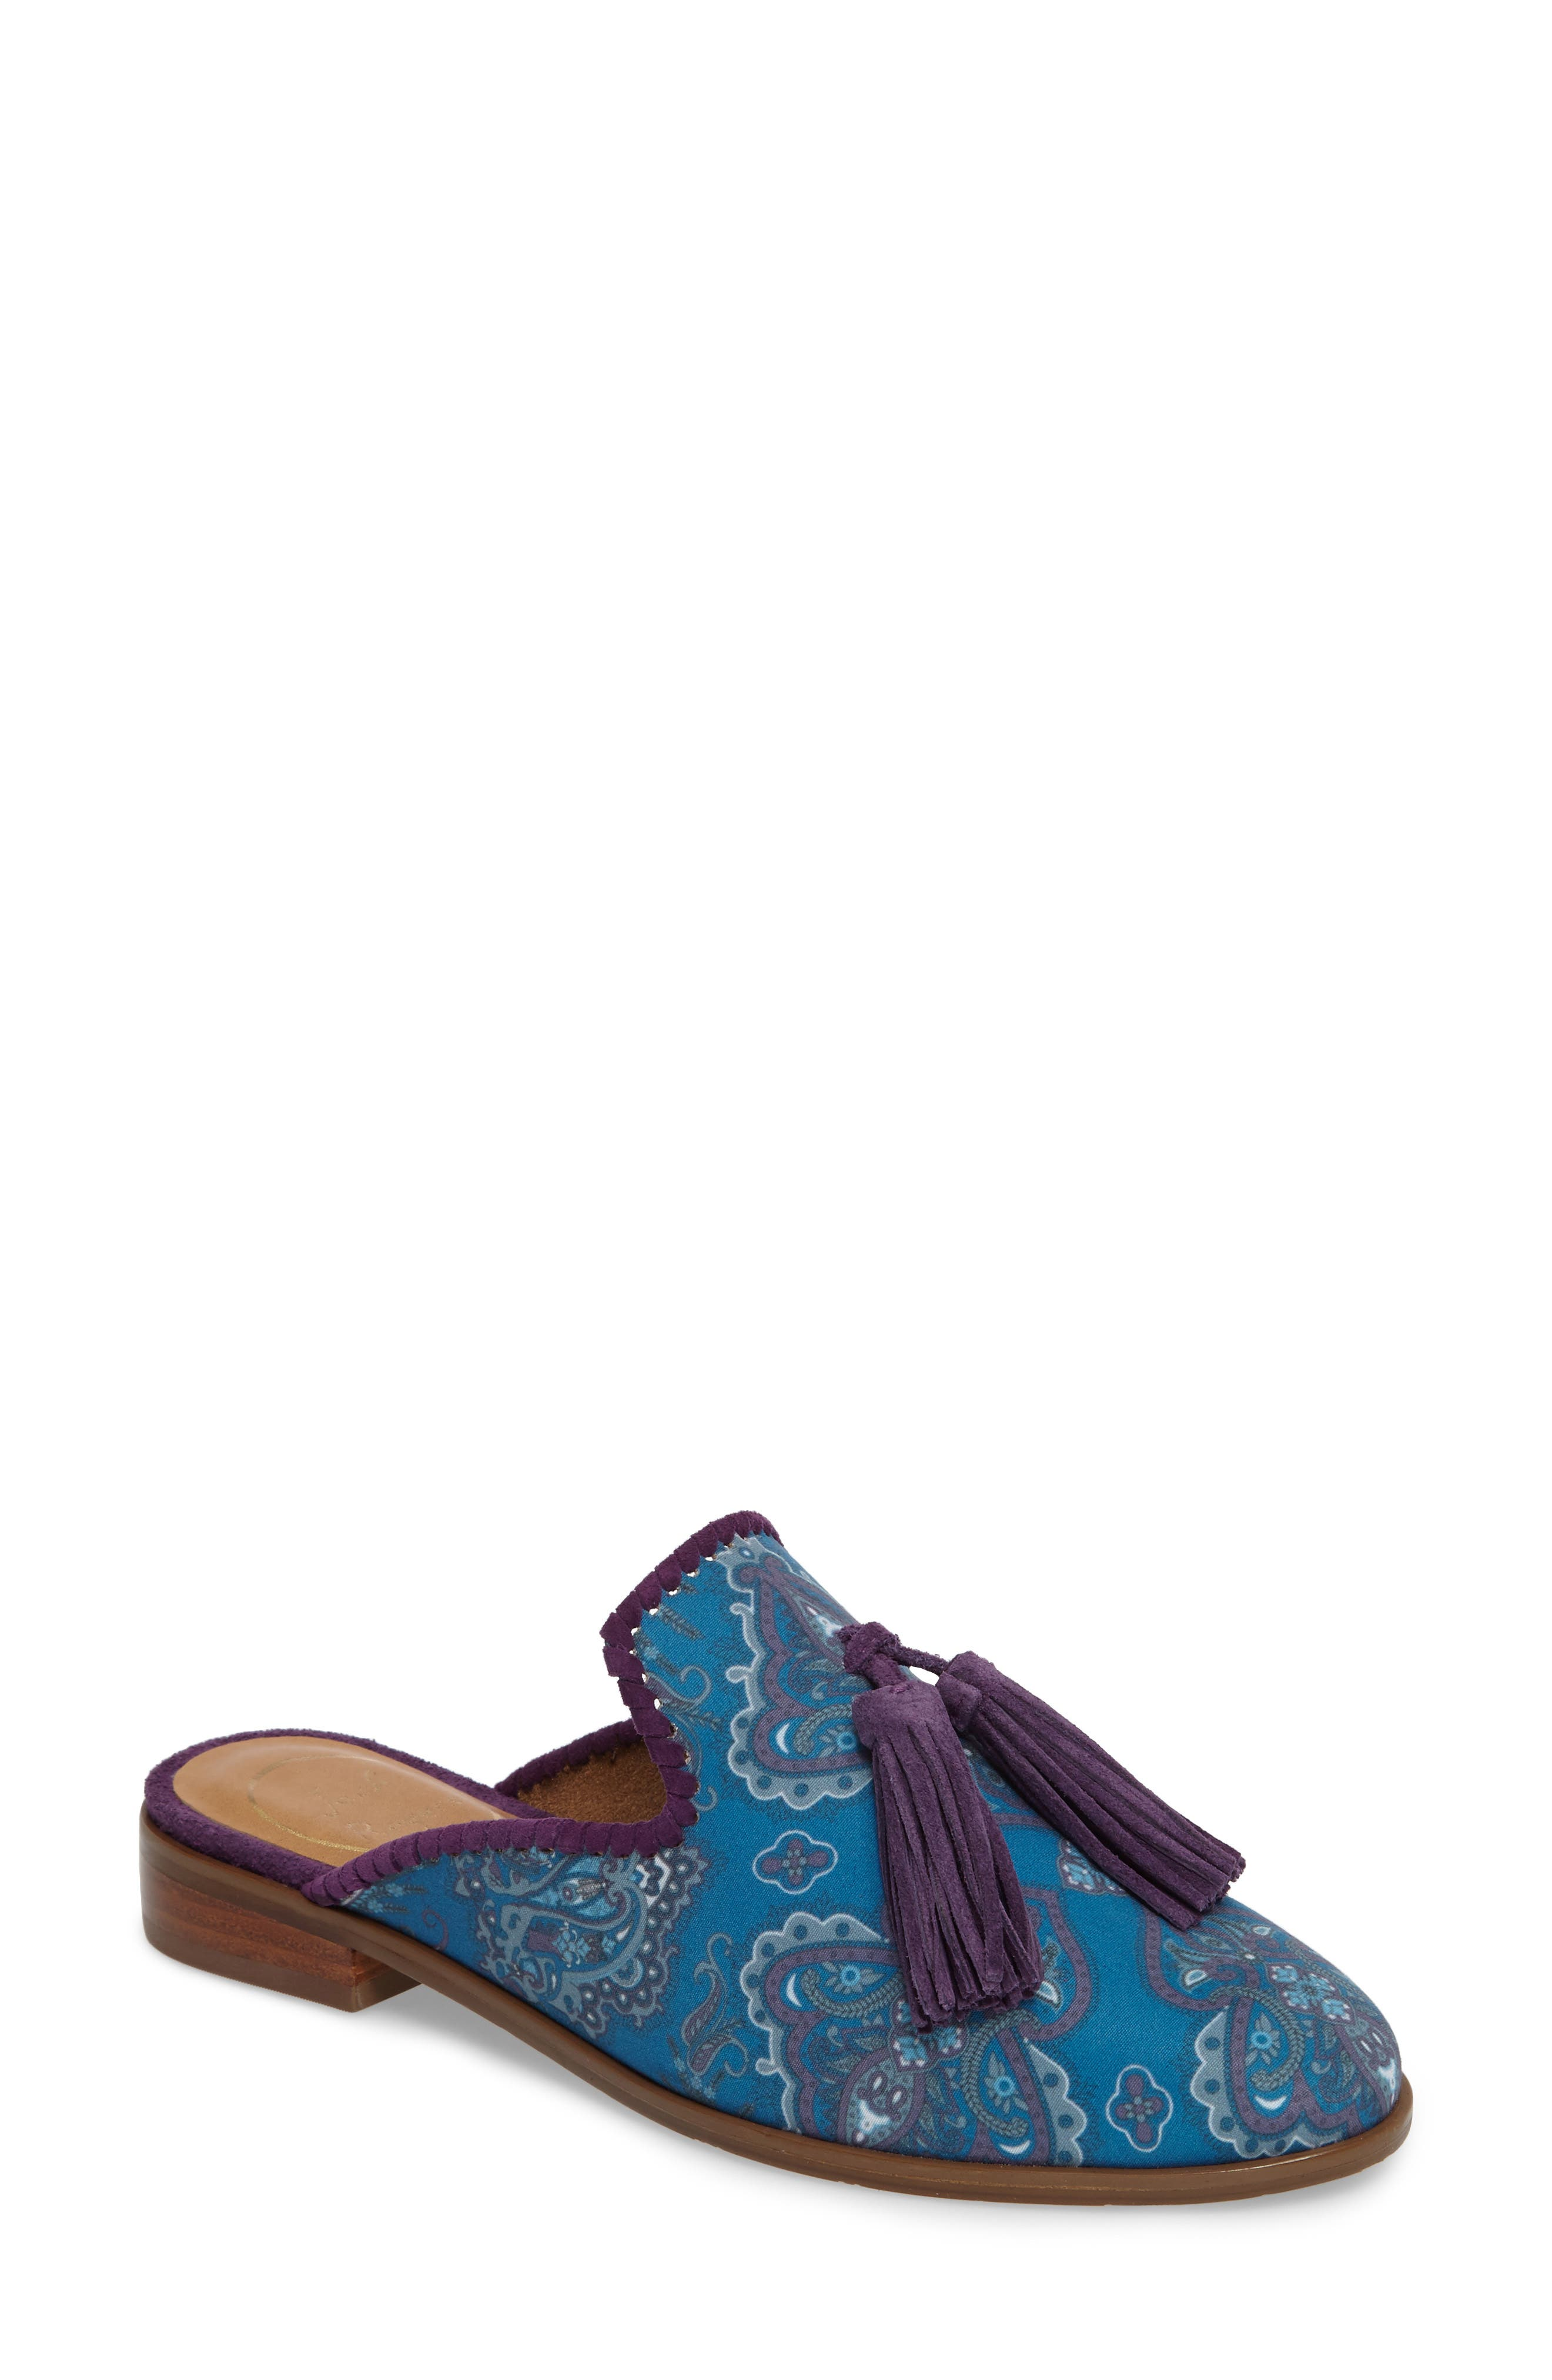 Delaney Tassel Mule,                             Main thumbnail 3, color,